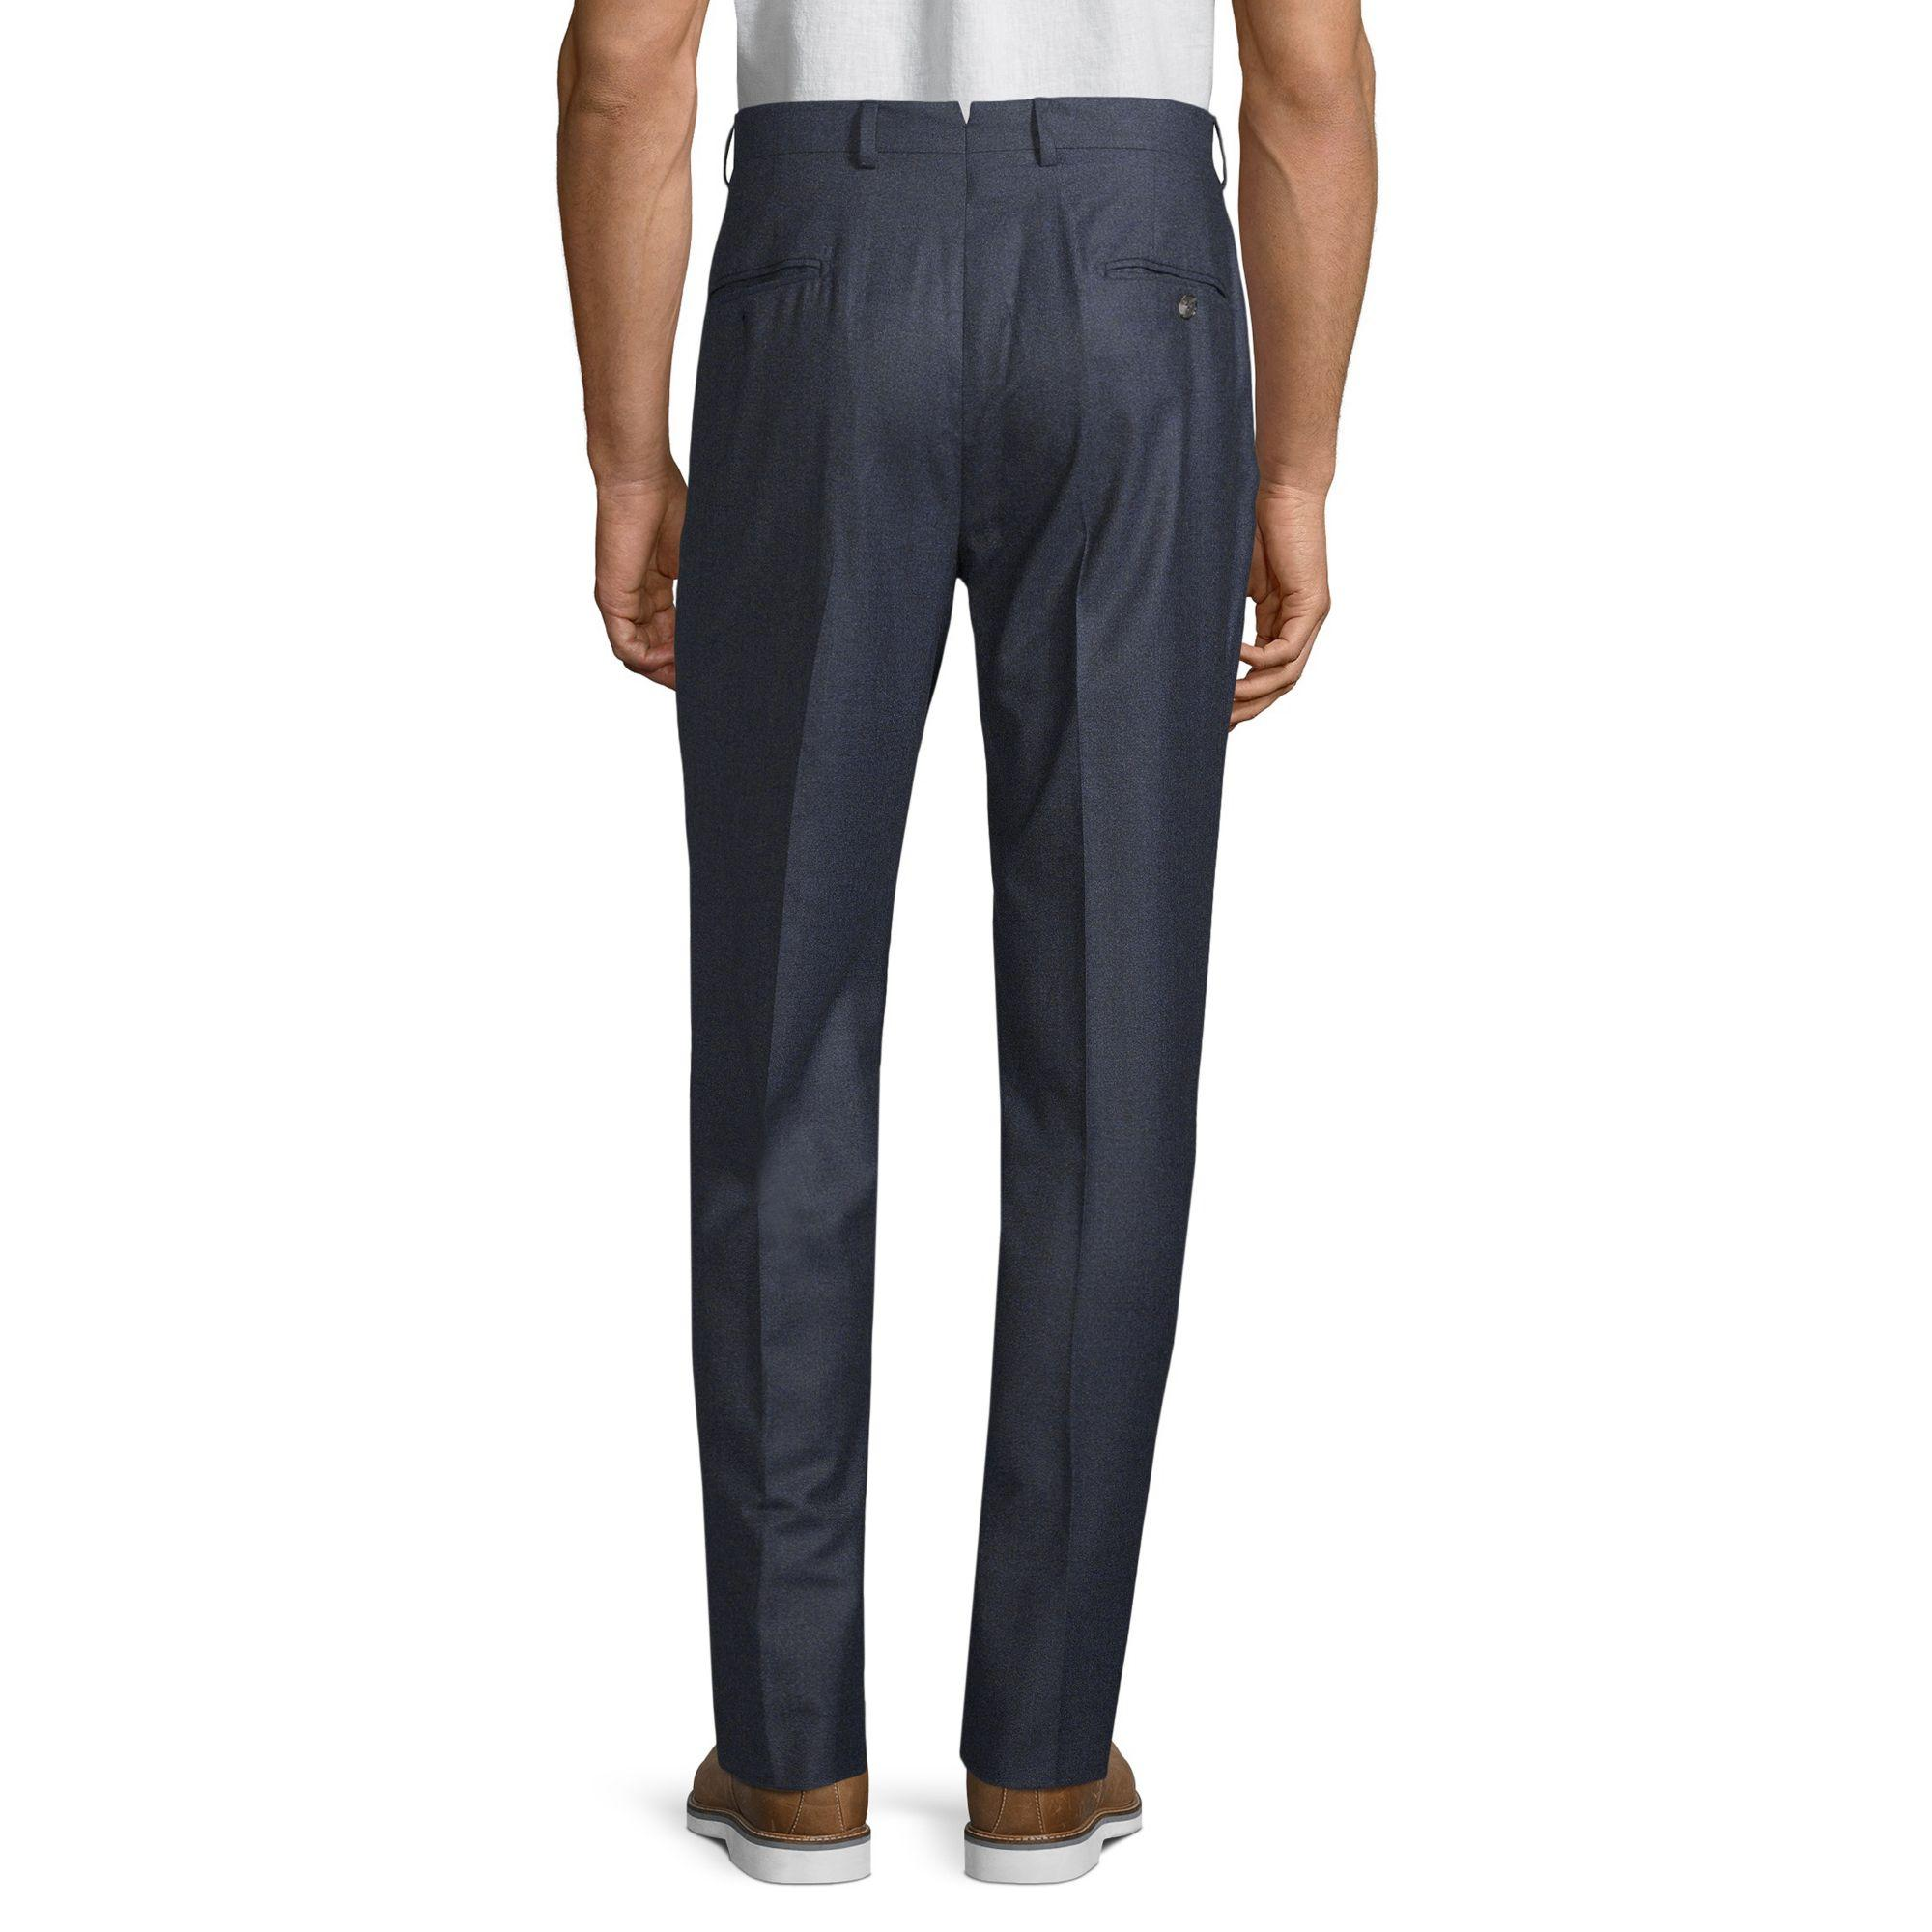 Hickey Freeman Flat-front Wool Trousers in Navy (Blue) for Men